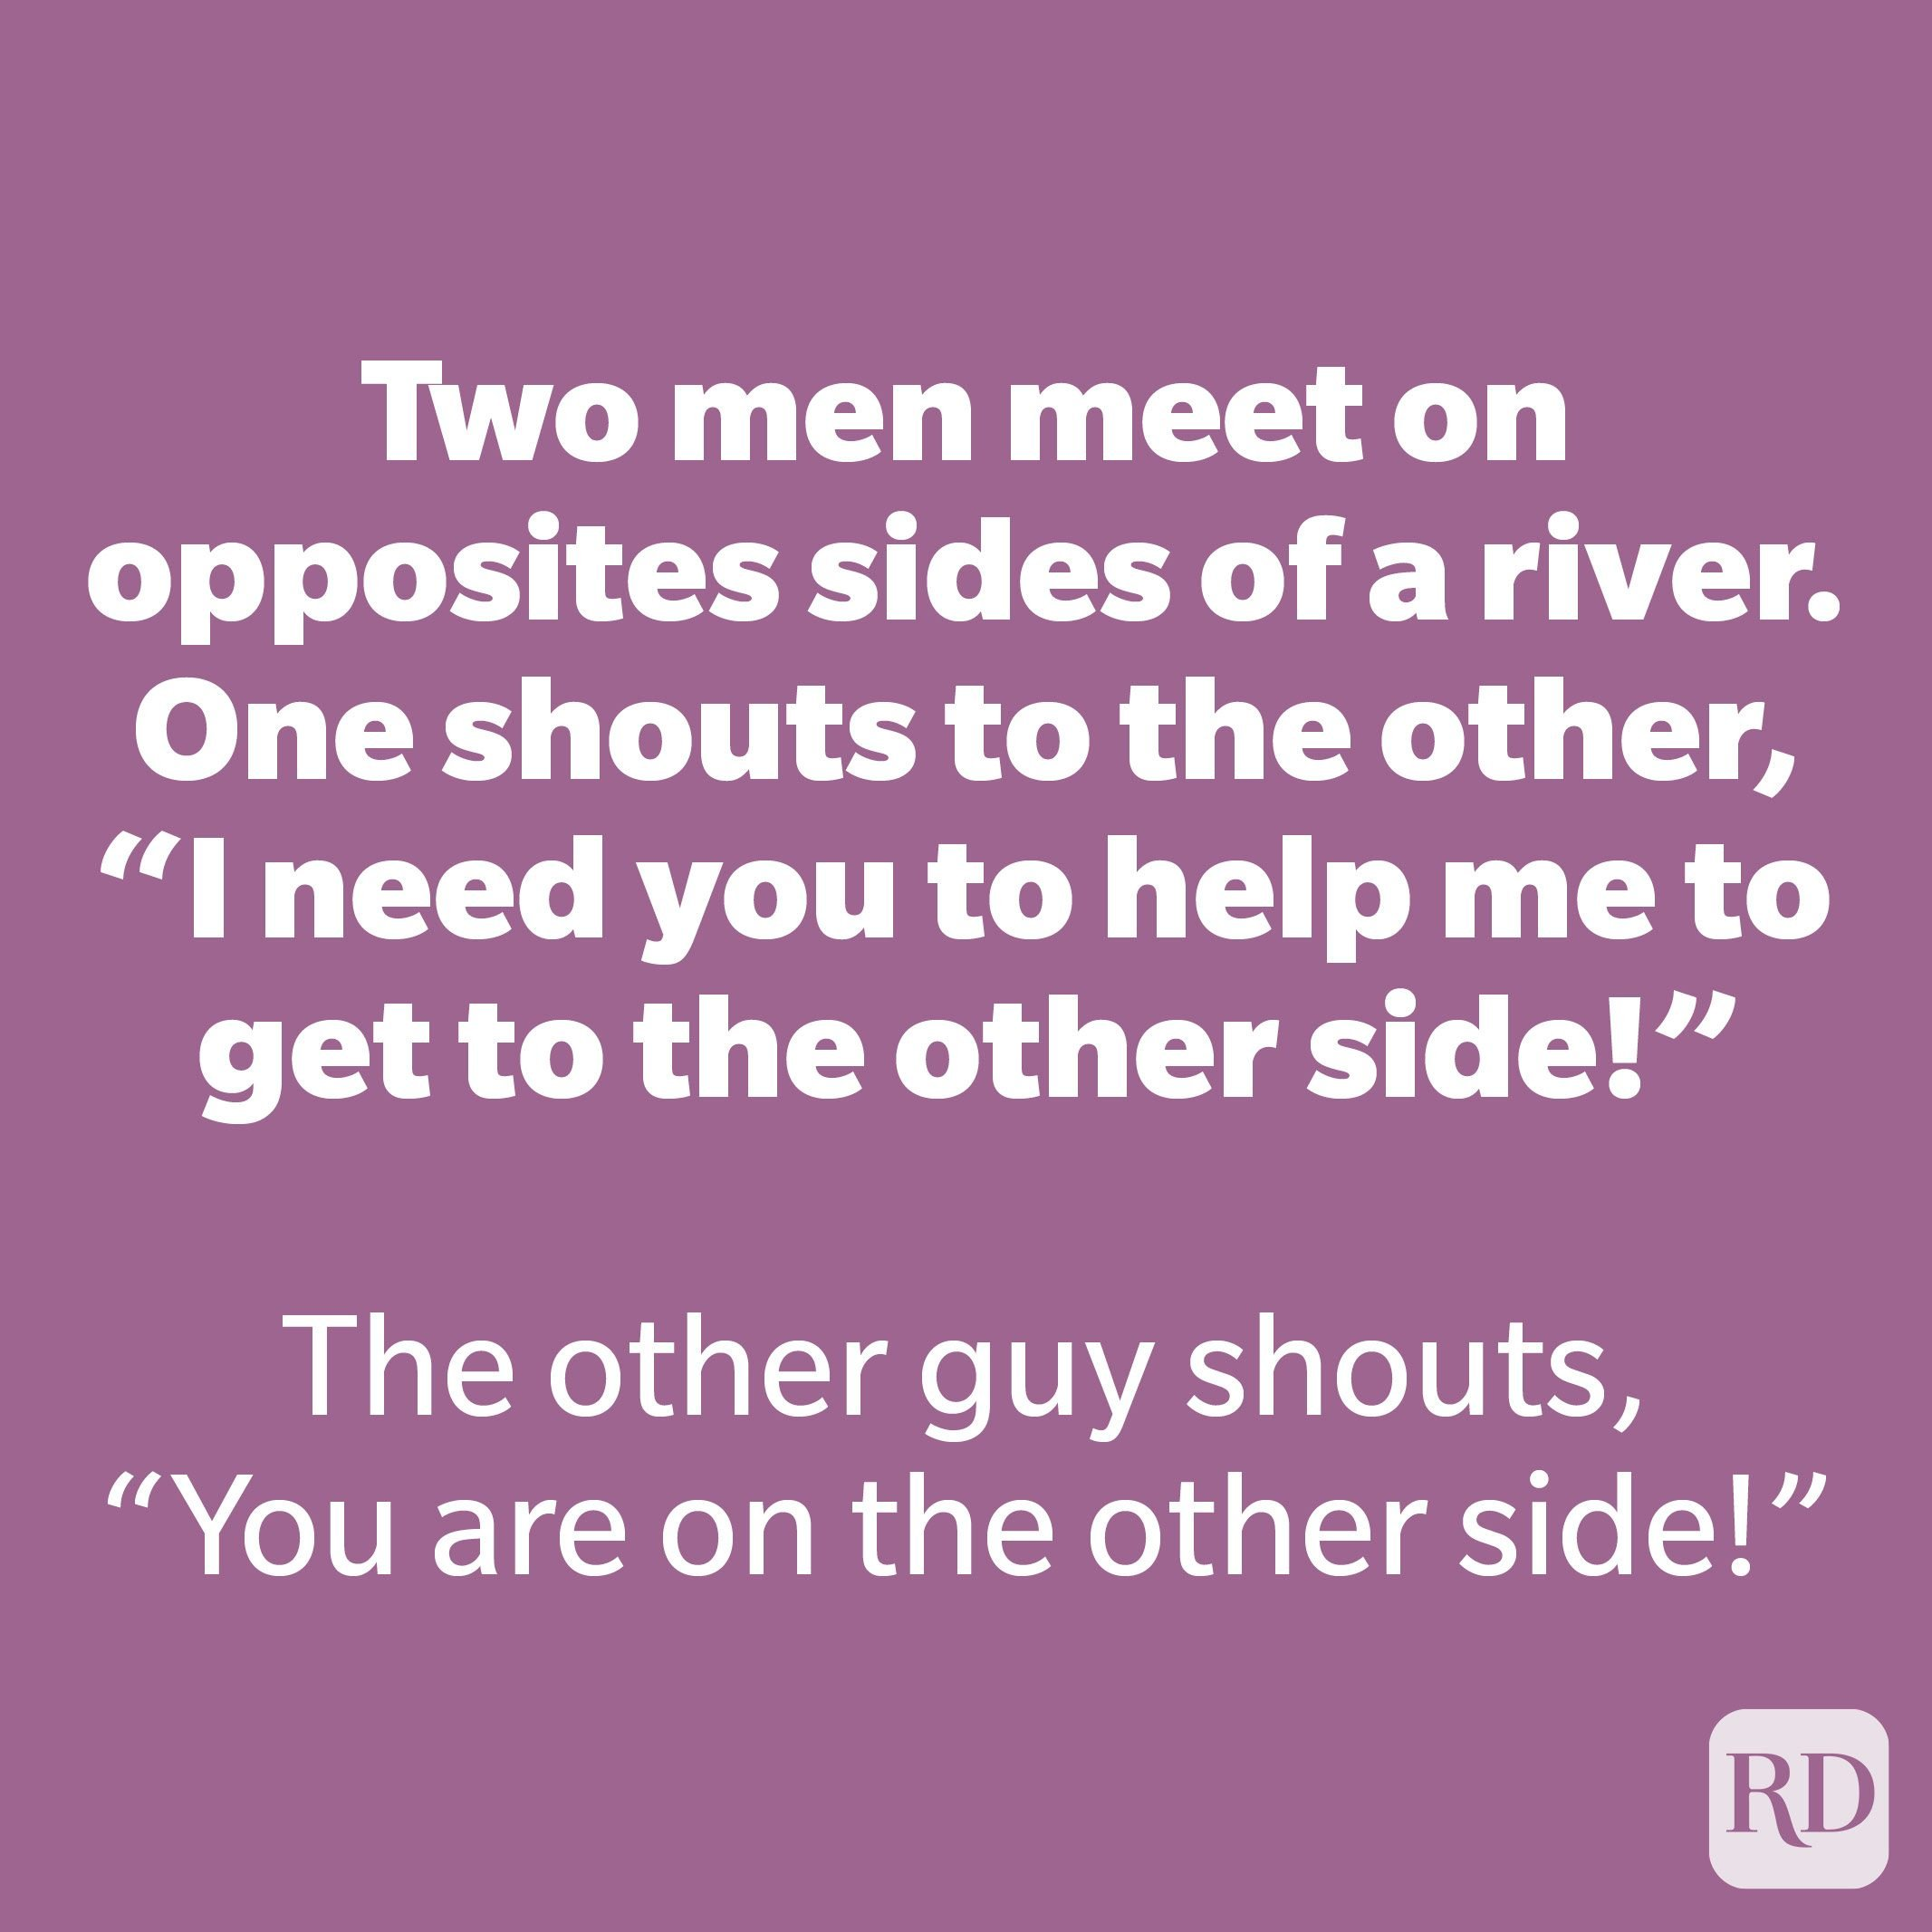 """Two men meet on opposites sides of a river. One shouts to the other """"I need you to help me to get to the other side!"""""""